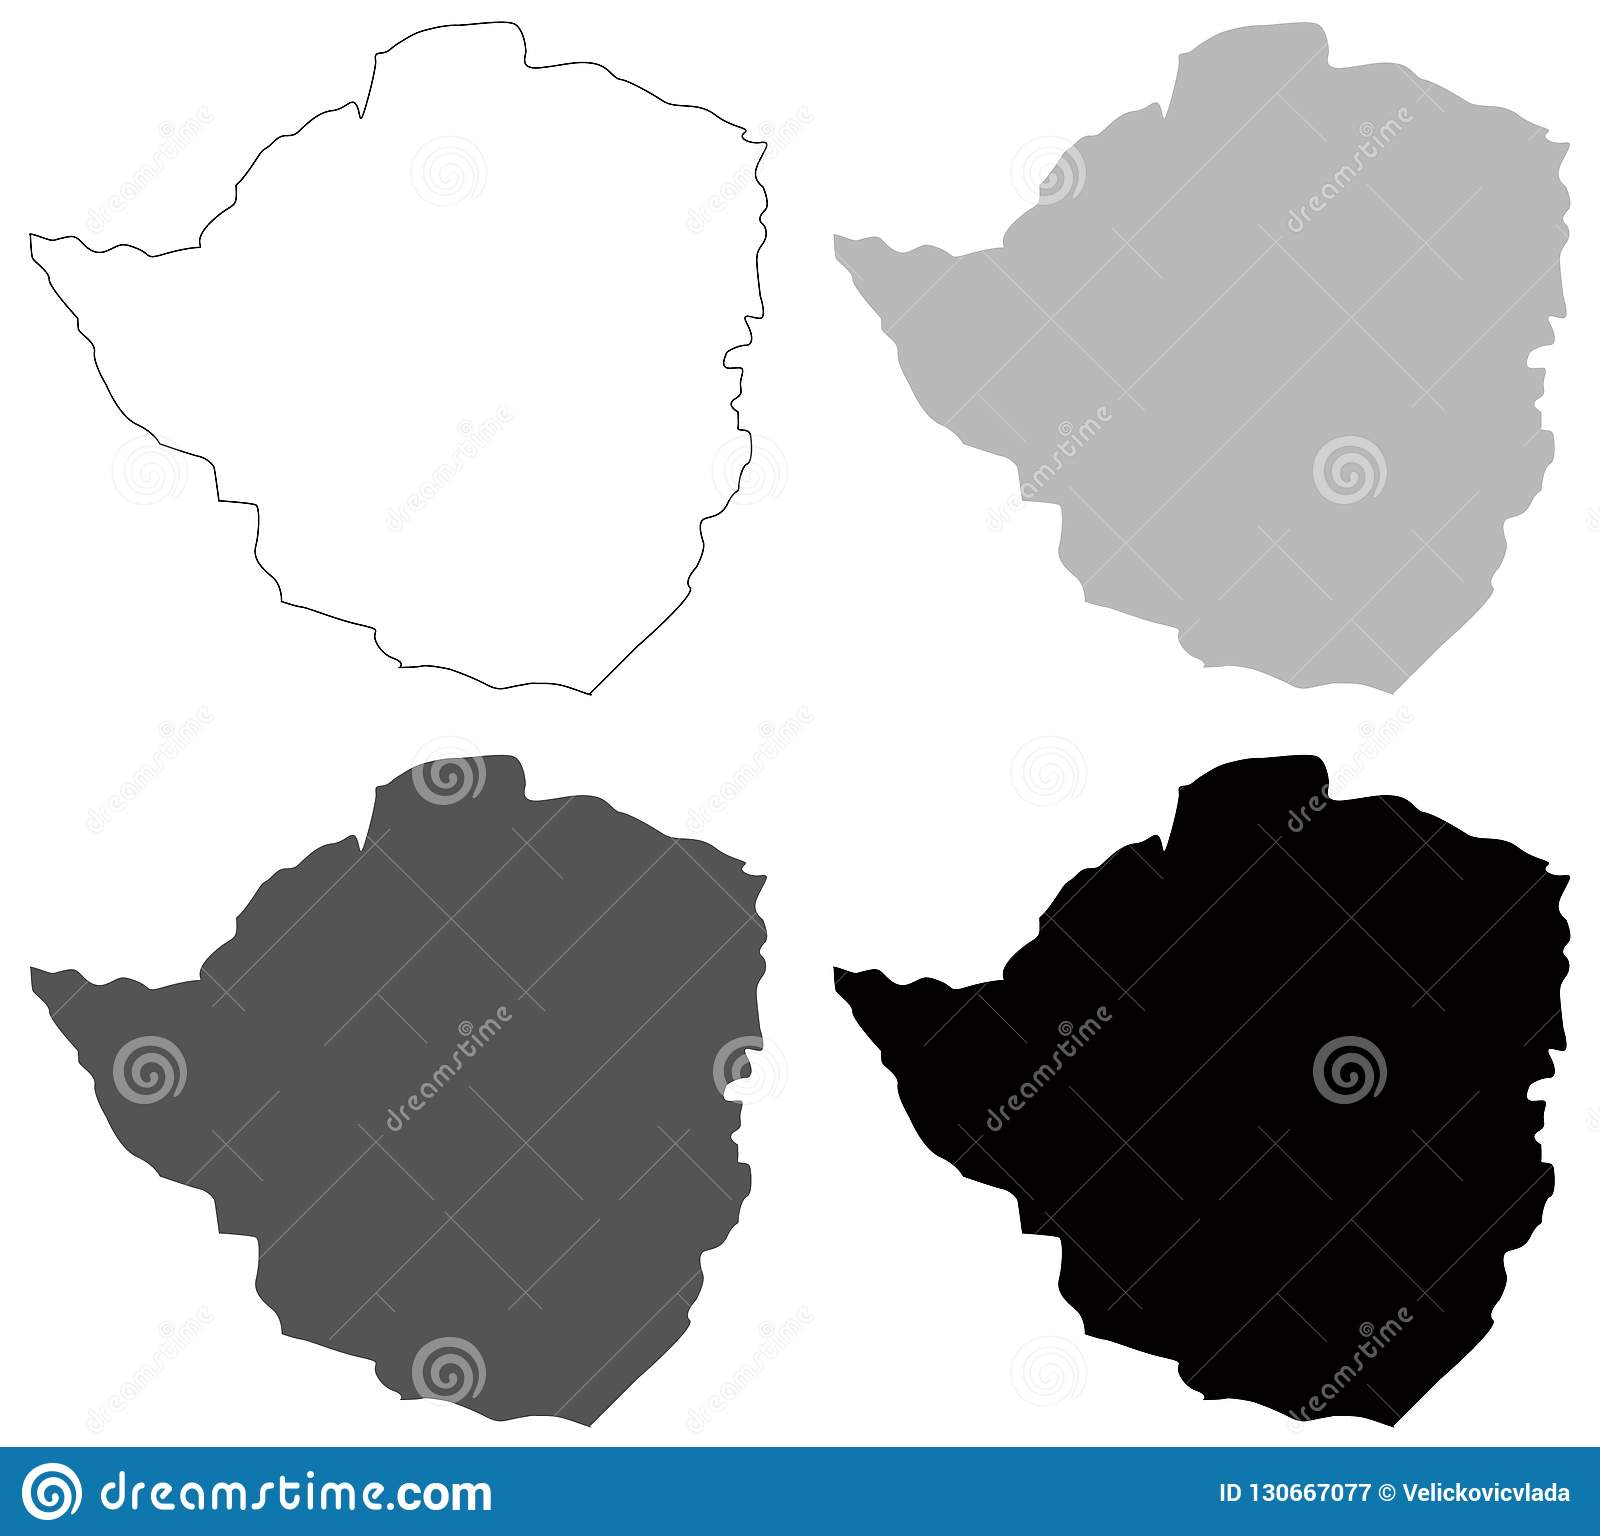 Zimbabwe Map - Country In Southern Africa Stock Vector ... on world map terrain, simple world map vector, world map outline vector, world map with symbols, world globe vector, world map social media icons, world map silhouette vector, world map to color, usa map icon vector, world map vector art, flat world map vector, world map vector ai, world icon no background, vintage map clip art vector, world map infographic element, us map vector, world map background vector, world map outline eps, world map clip art,